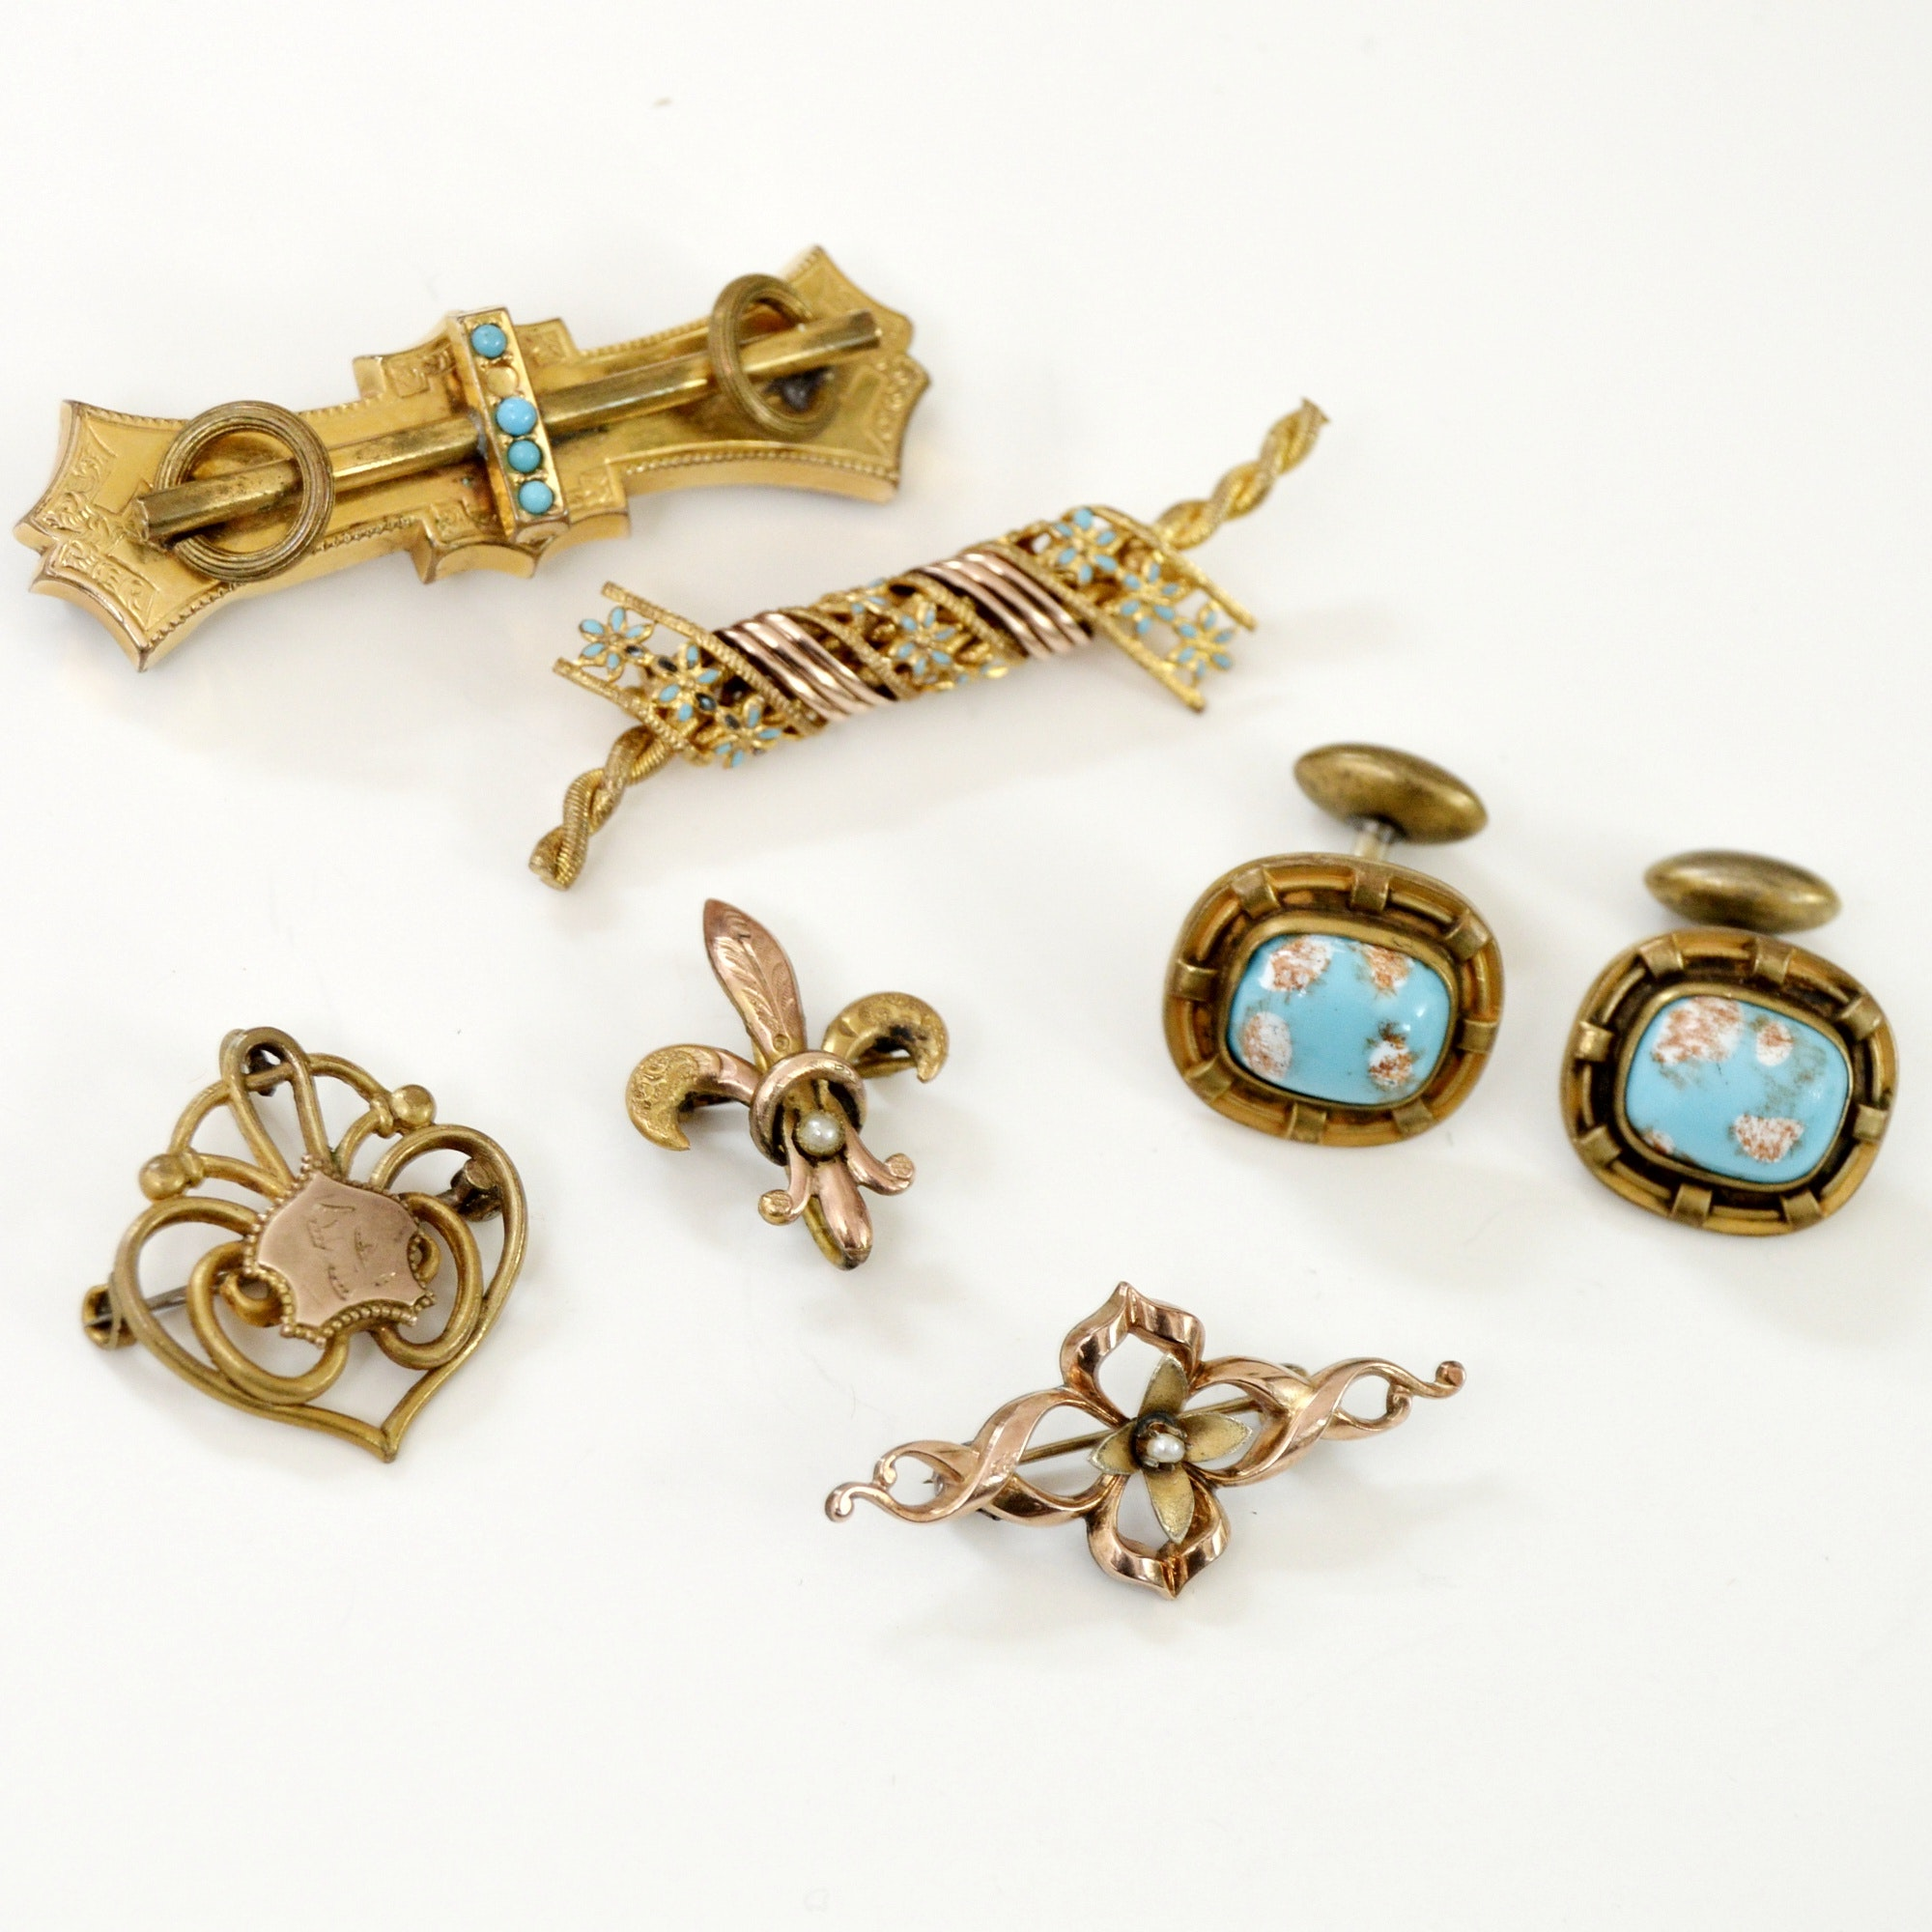 Victorian, Art Nouveau, Arts and Crafts Brooches, Cufflinks